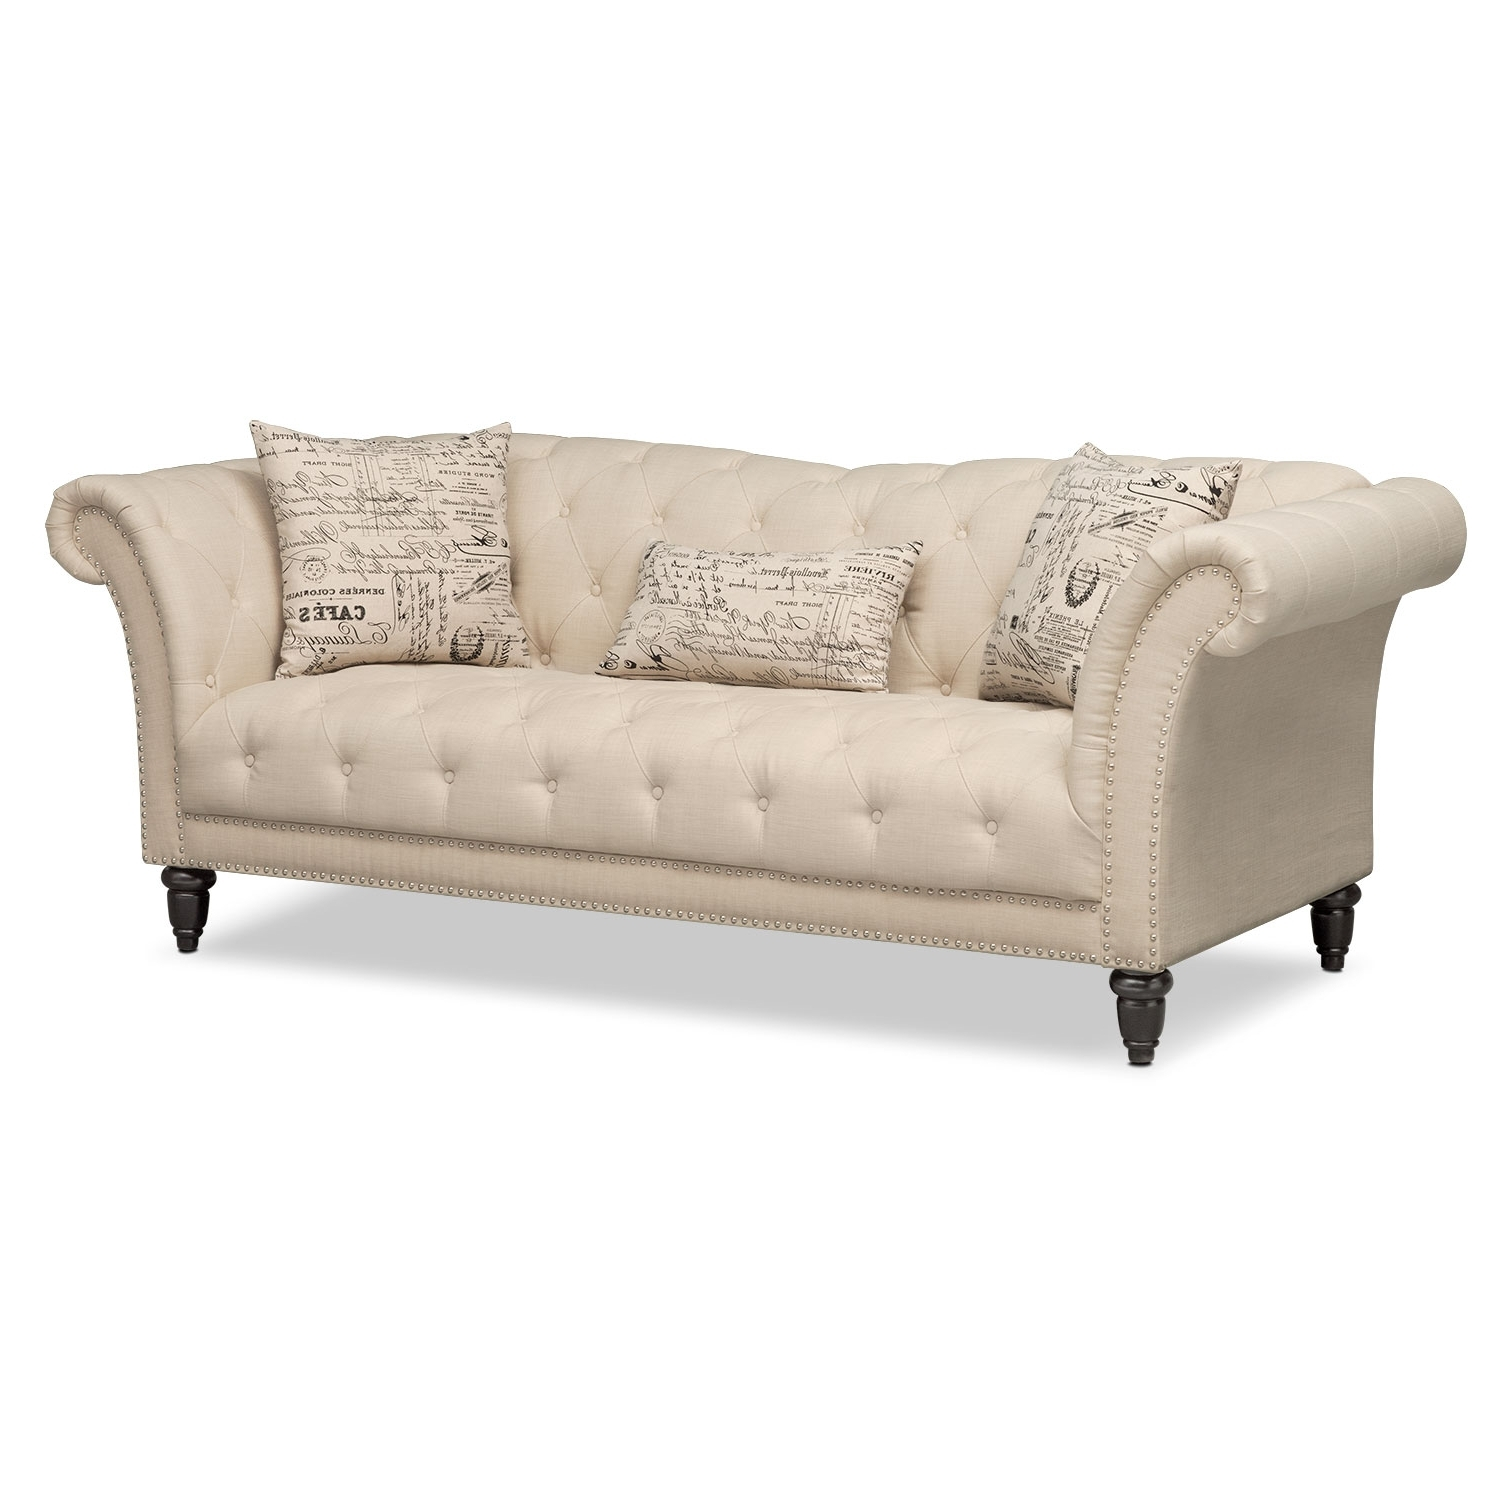 Value City Regarding Value City Sofas (View 18 of 20)